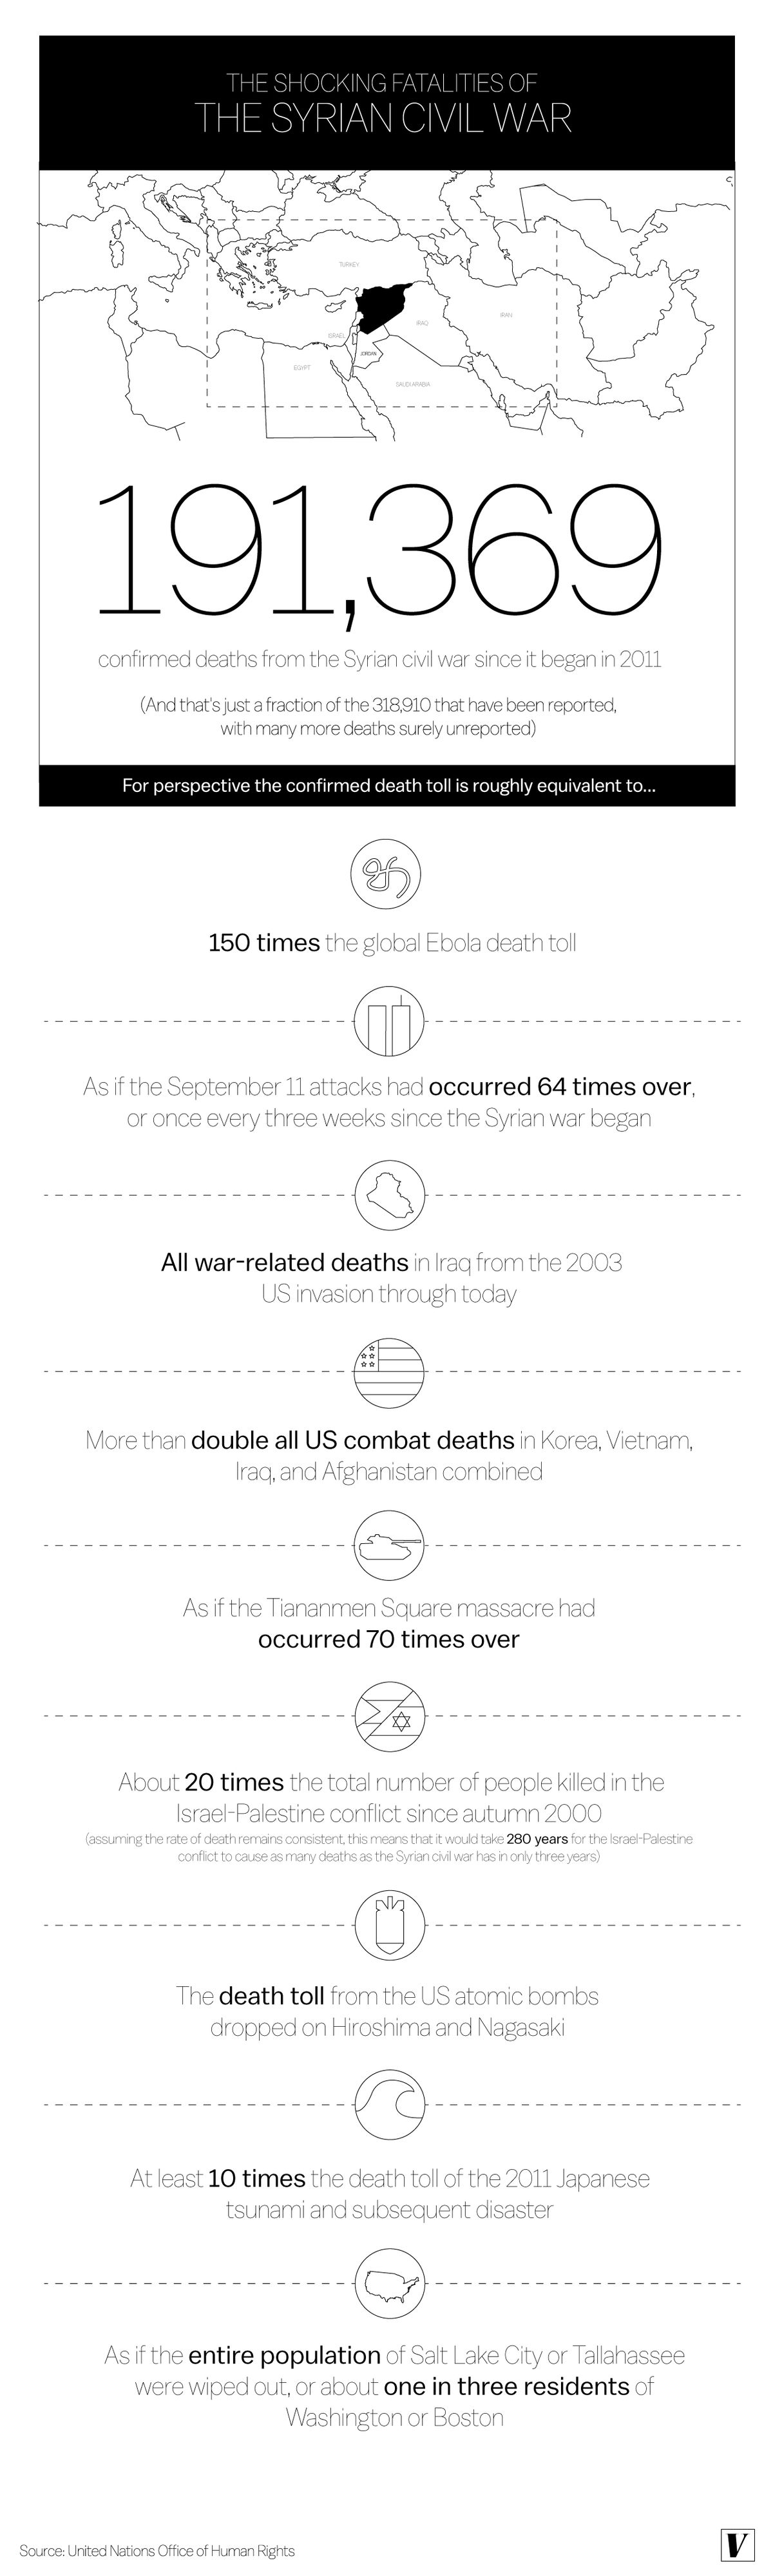 Syria death toll infographic